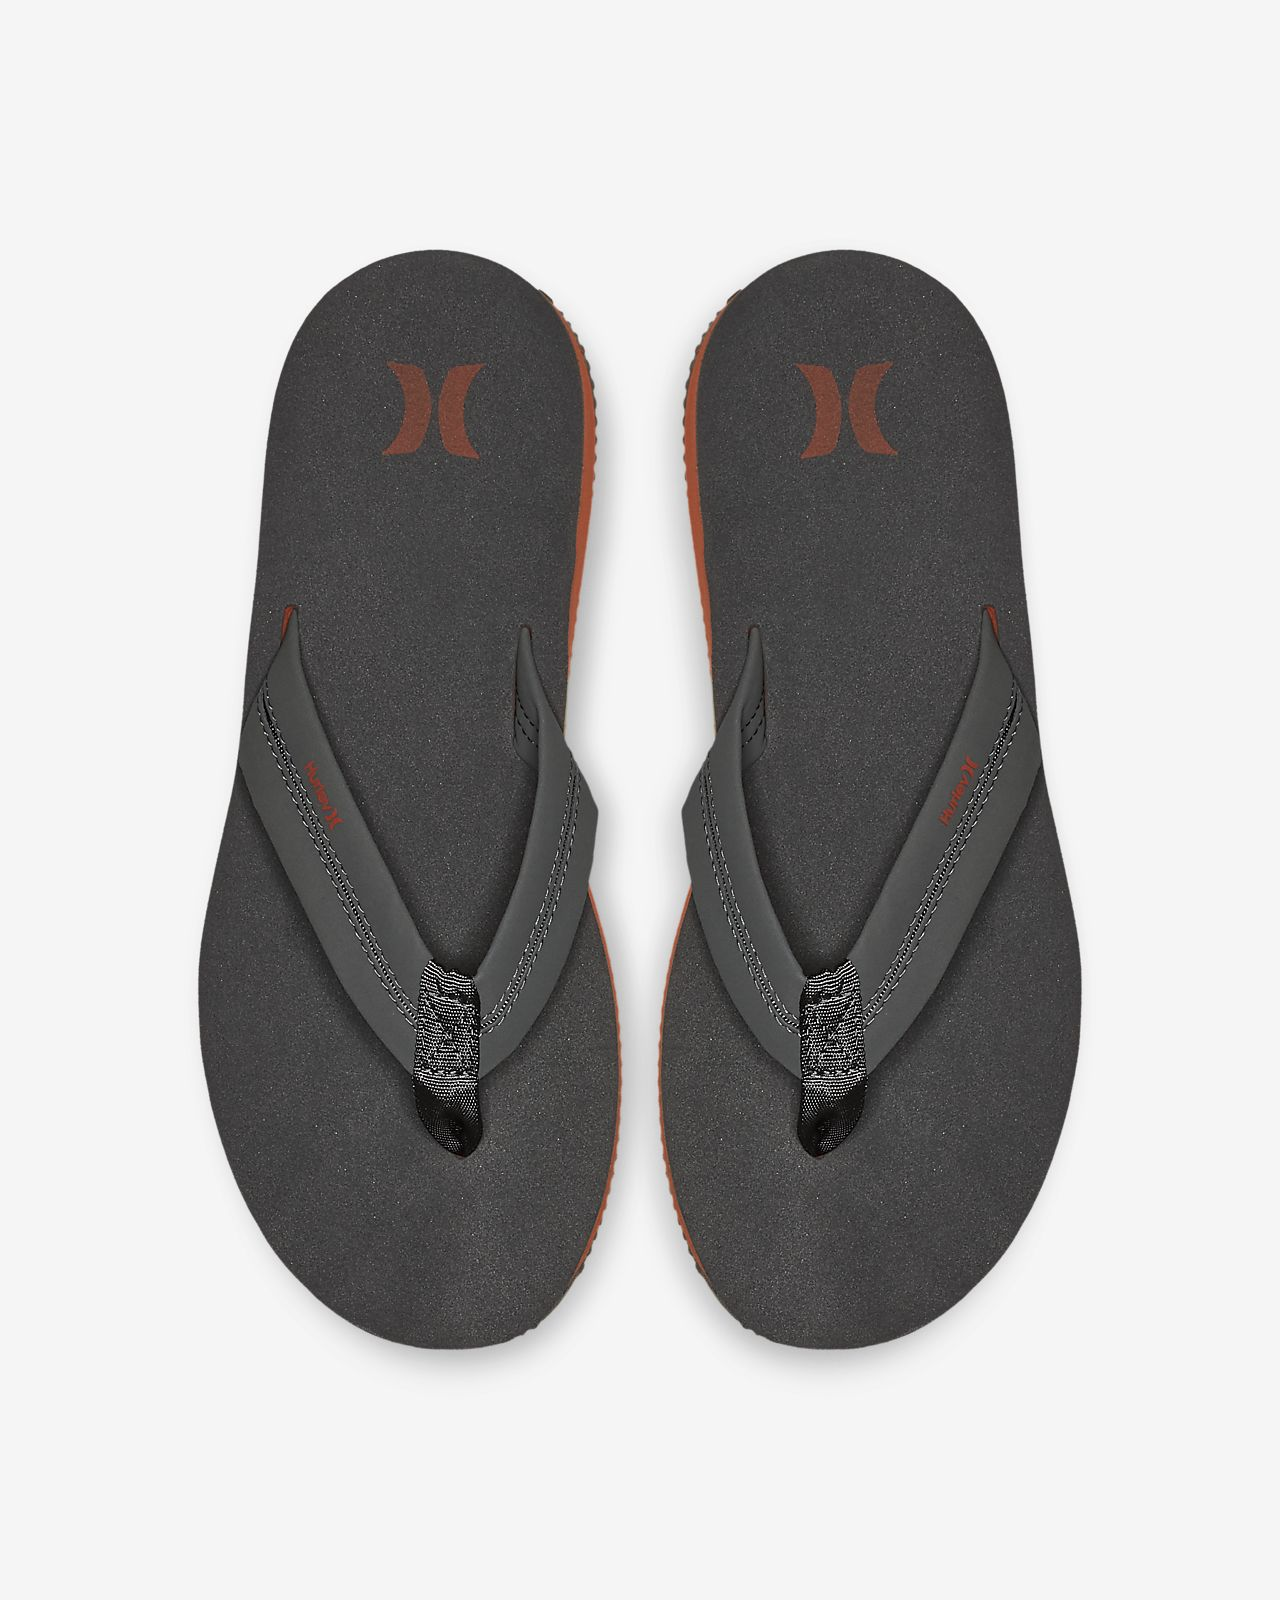 champán Marty Fielding Monopolio  Hurley Lunar Men's Sandals. Nike BE